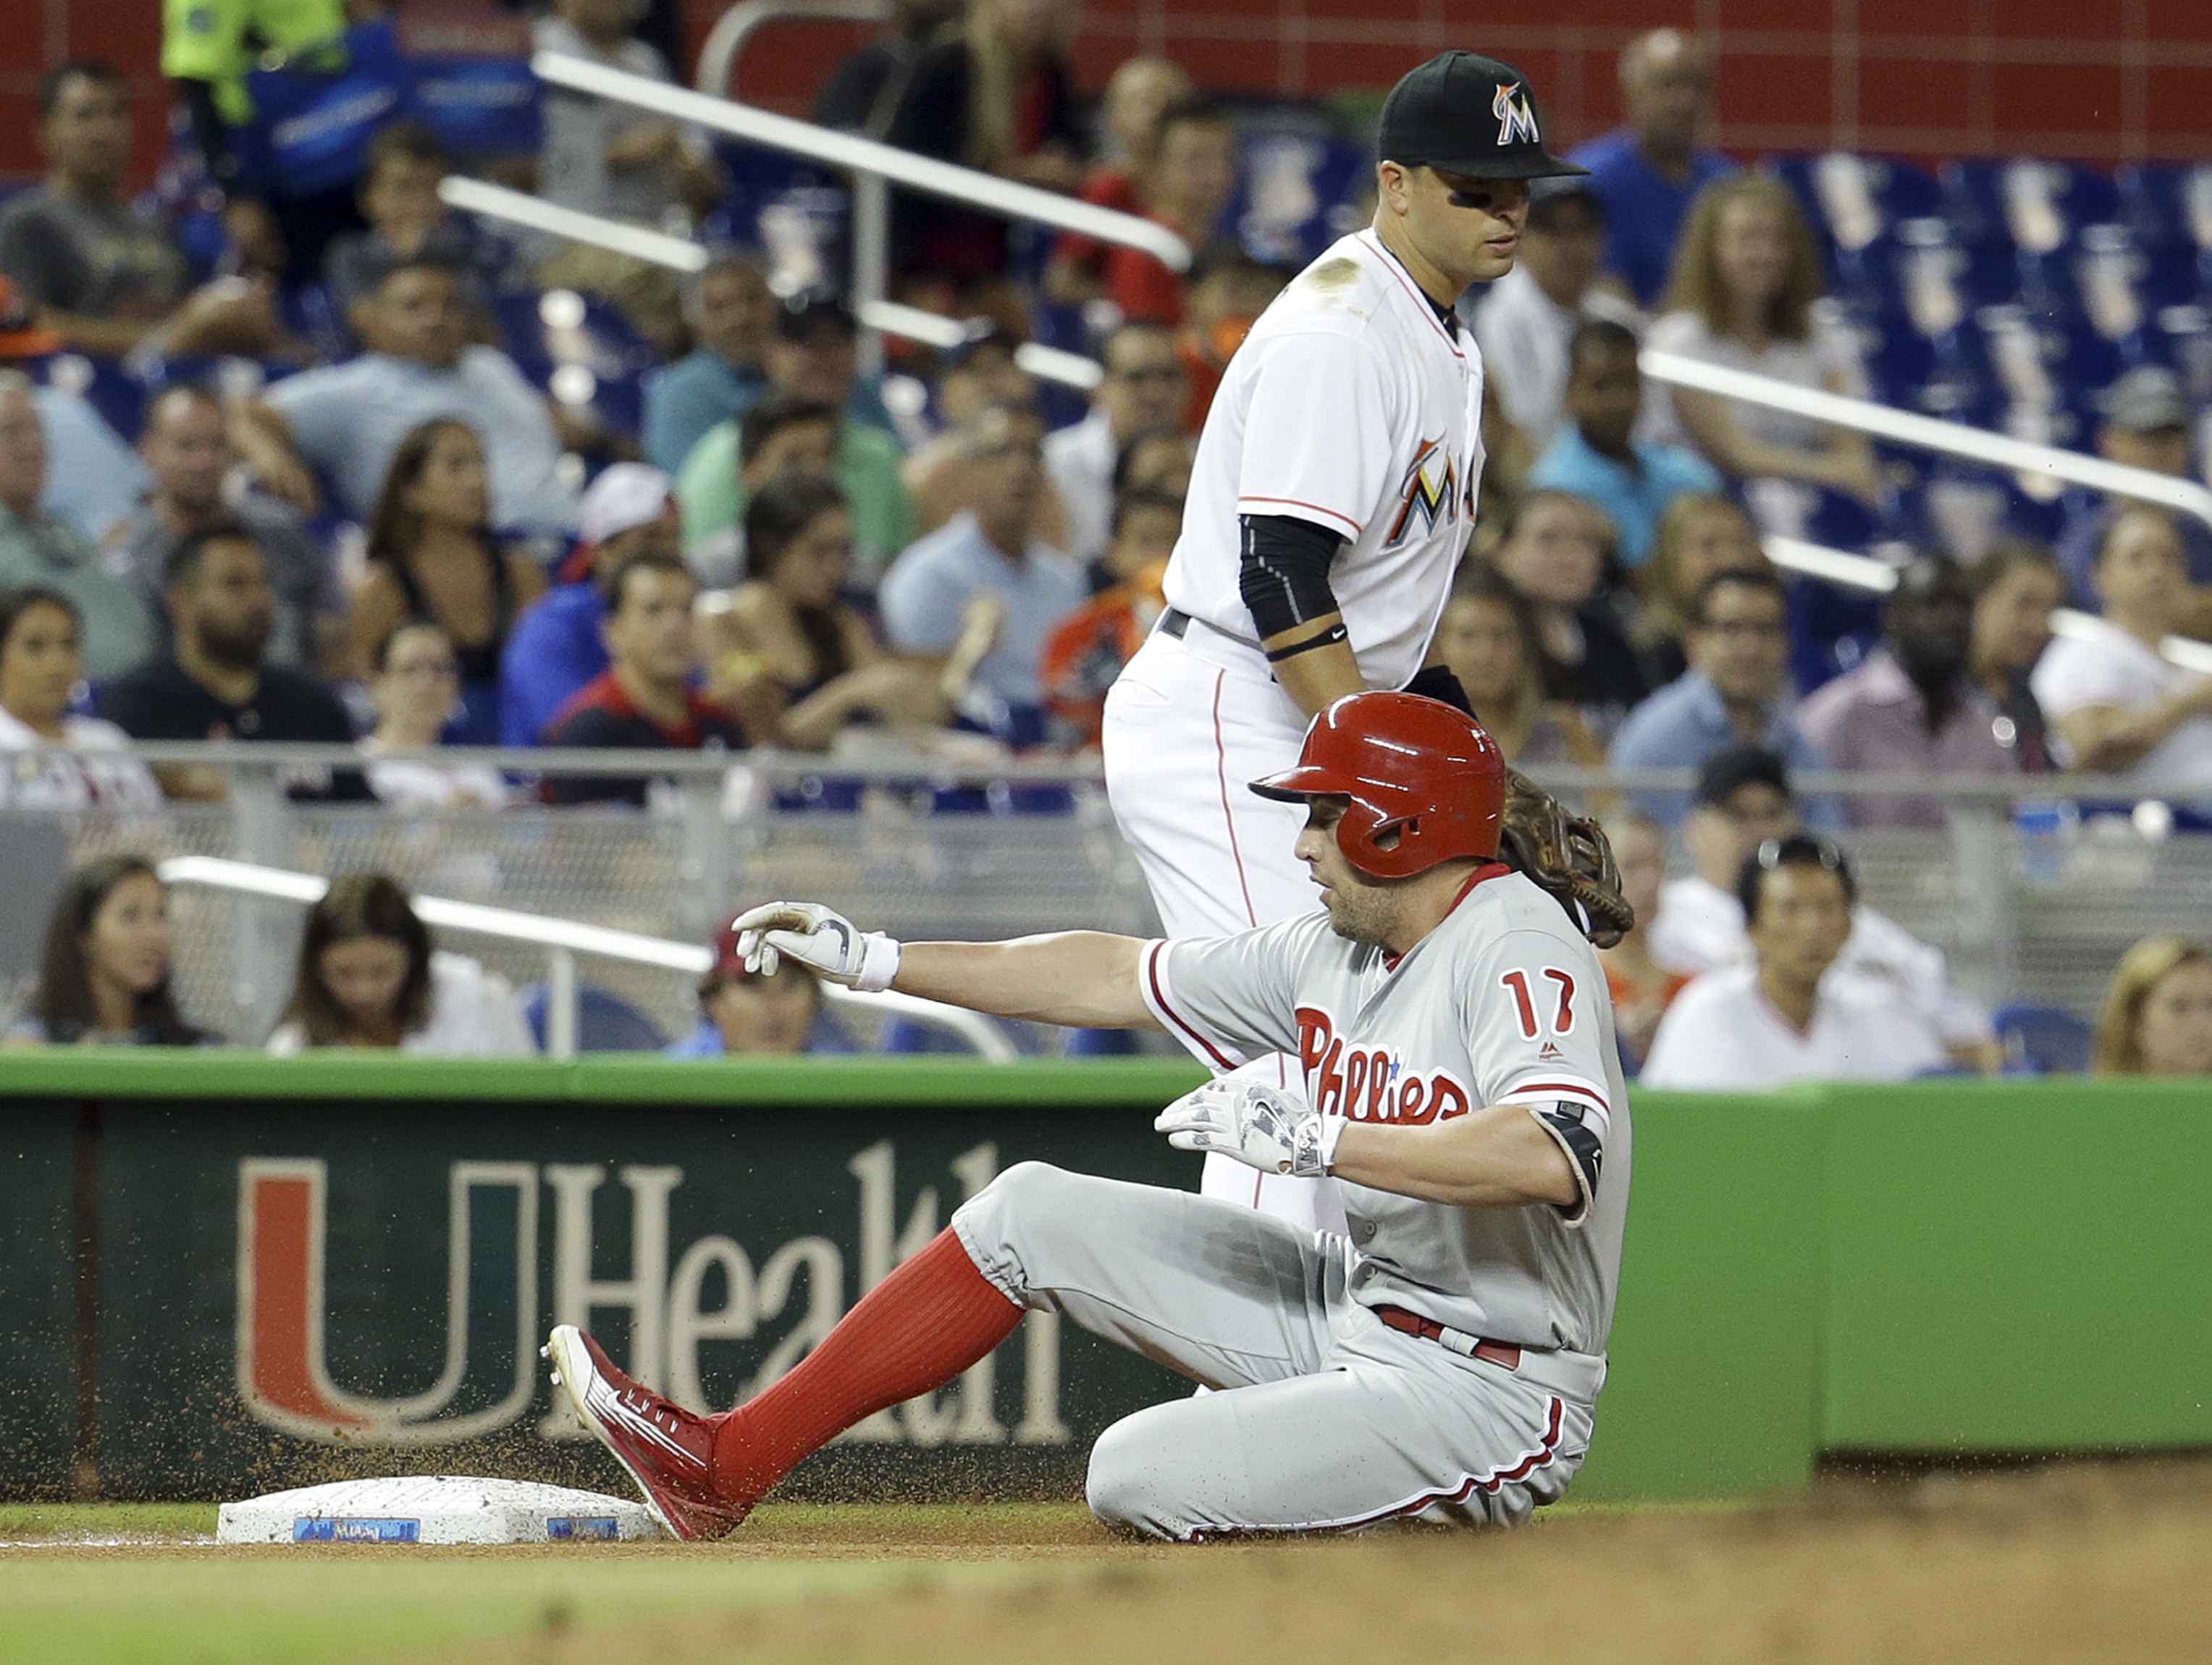 Philadelphia Phillies' Peter Bourjos (17) is safe at third with a triple as Miami Marlins third baseman Martin Prado looks on during the fifth inning of a baseball game, Monday, Sept. 5, 2016, in Miami. (AP Photo/Lynne Sladky)